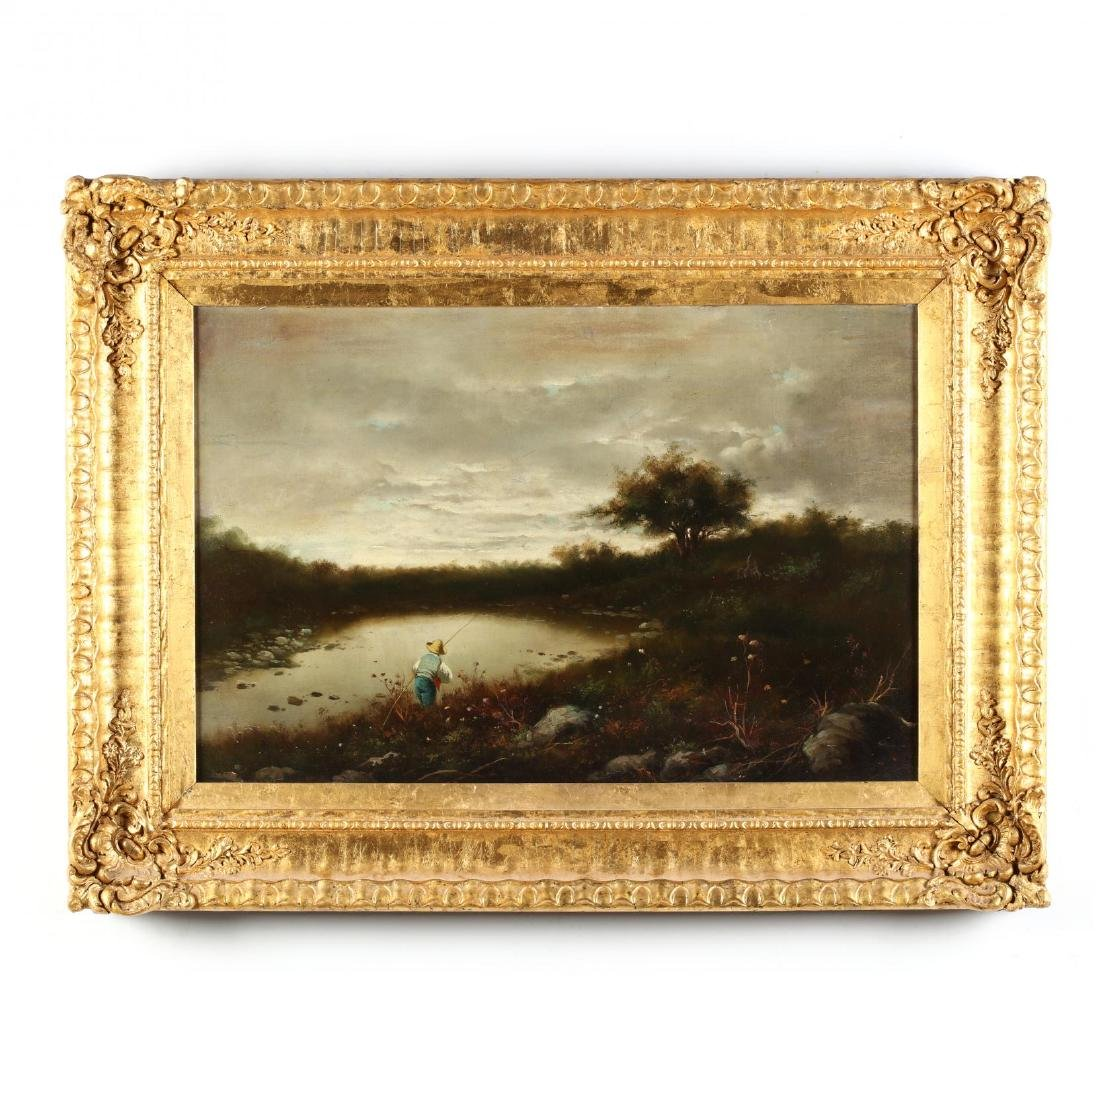 An Antique English School Painting of a Young Fisherman